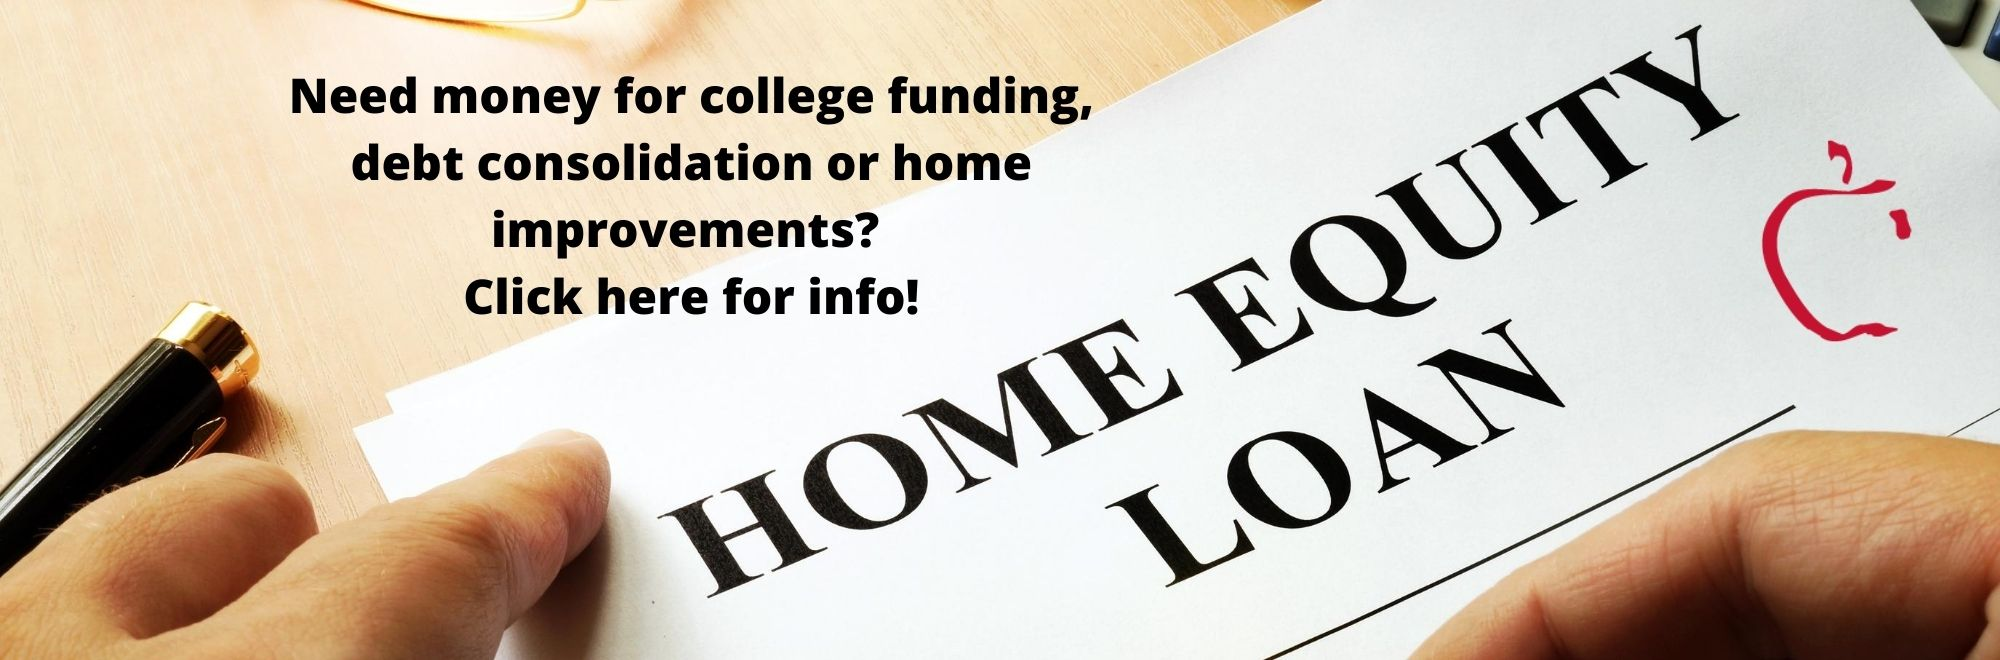 Need money for college funding, debt consolidation or home improvements?